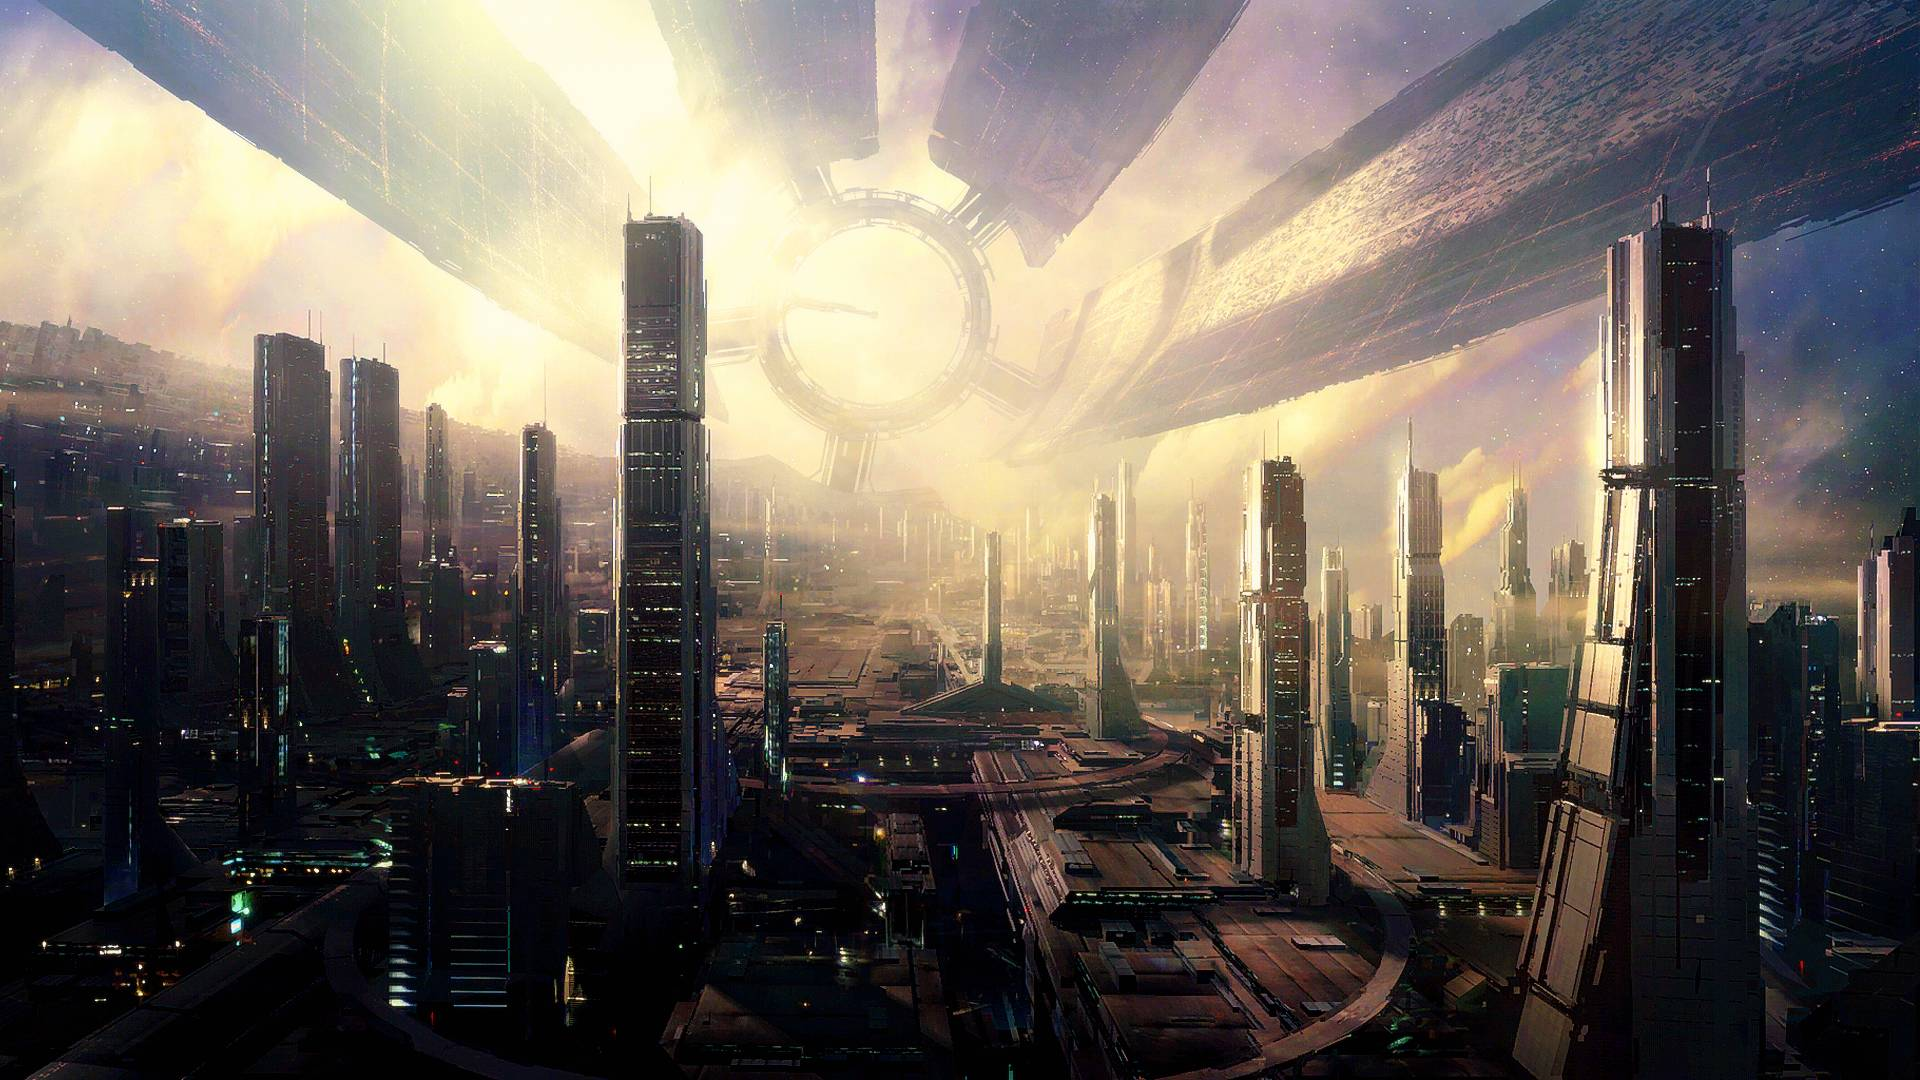 50 futuristic city wallpapers for In the city wallpaper